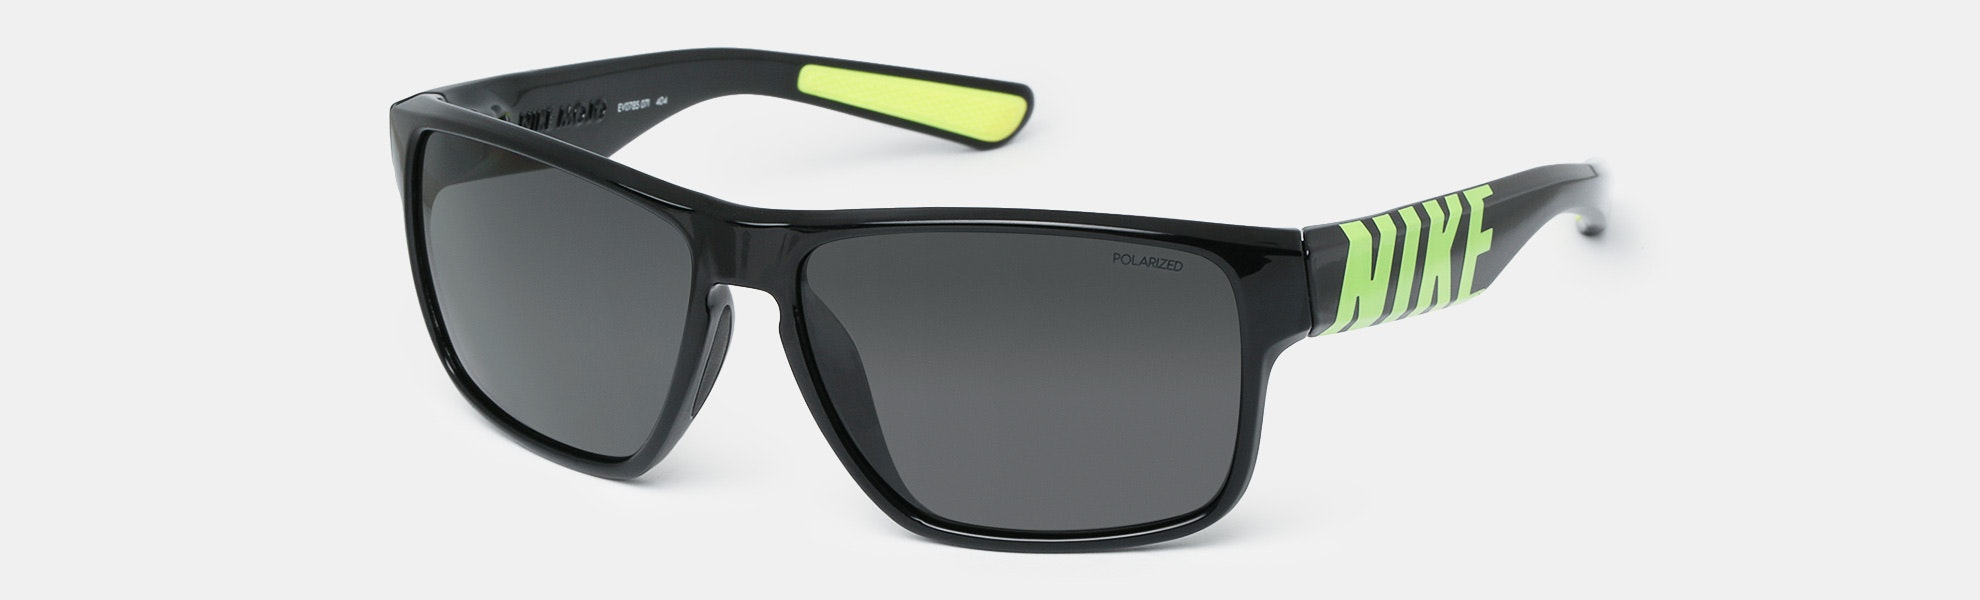 Nike Mojo Men's Polarized Sunglasses